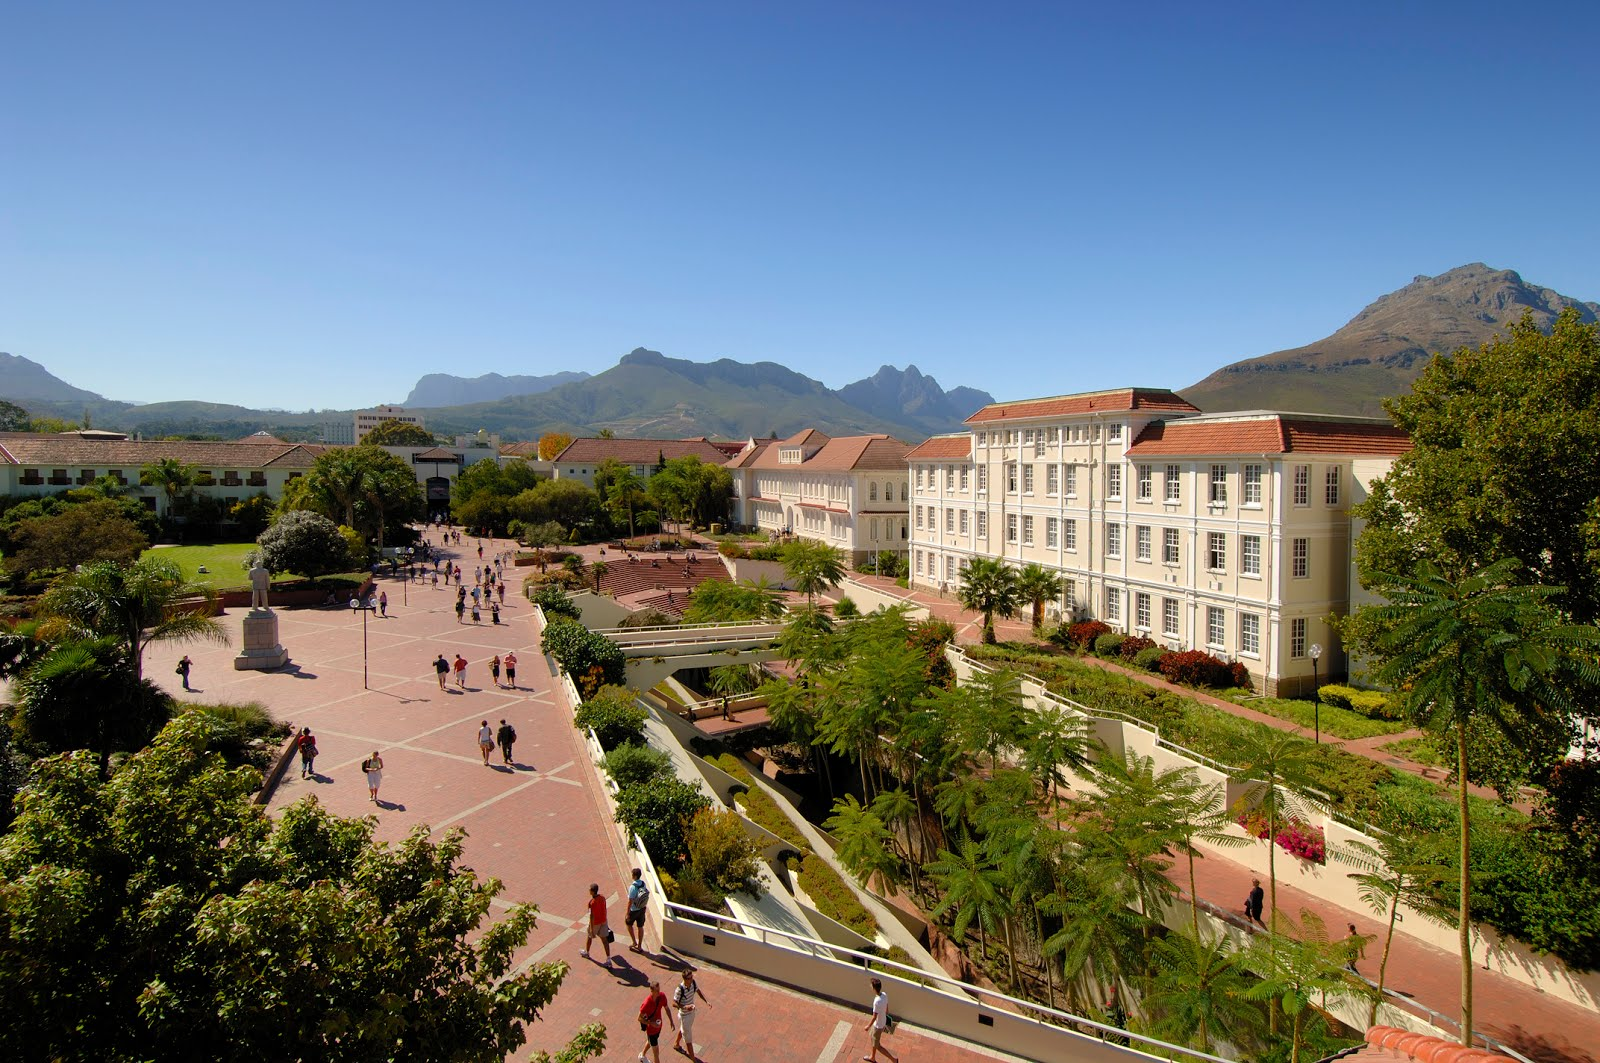 3rd best university in south africa